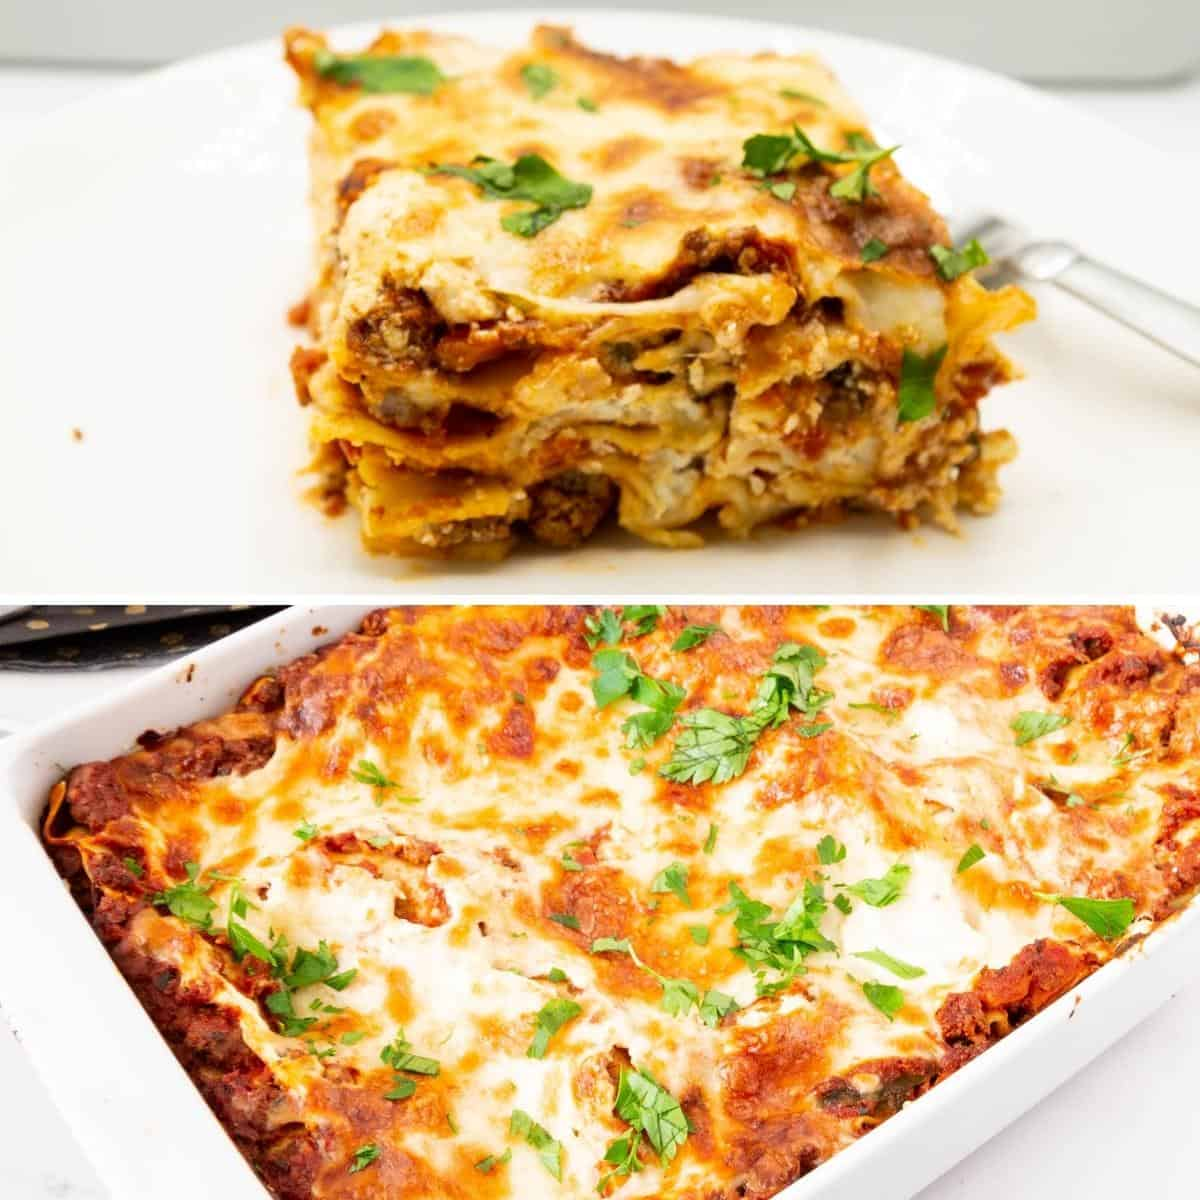 Collage showing layers of the lasagna noodles.